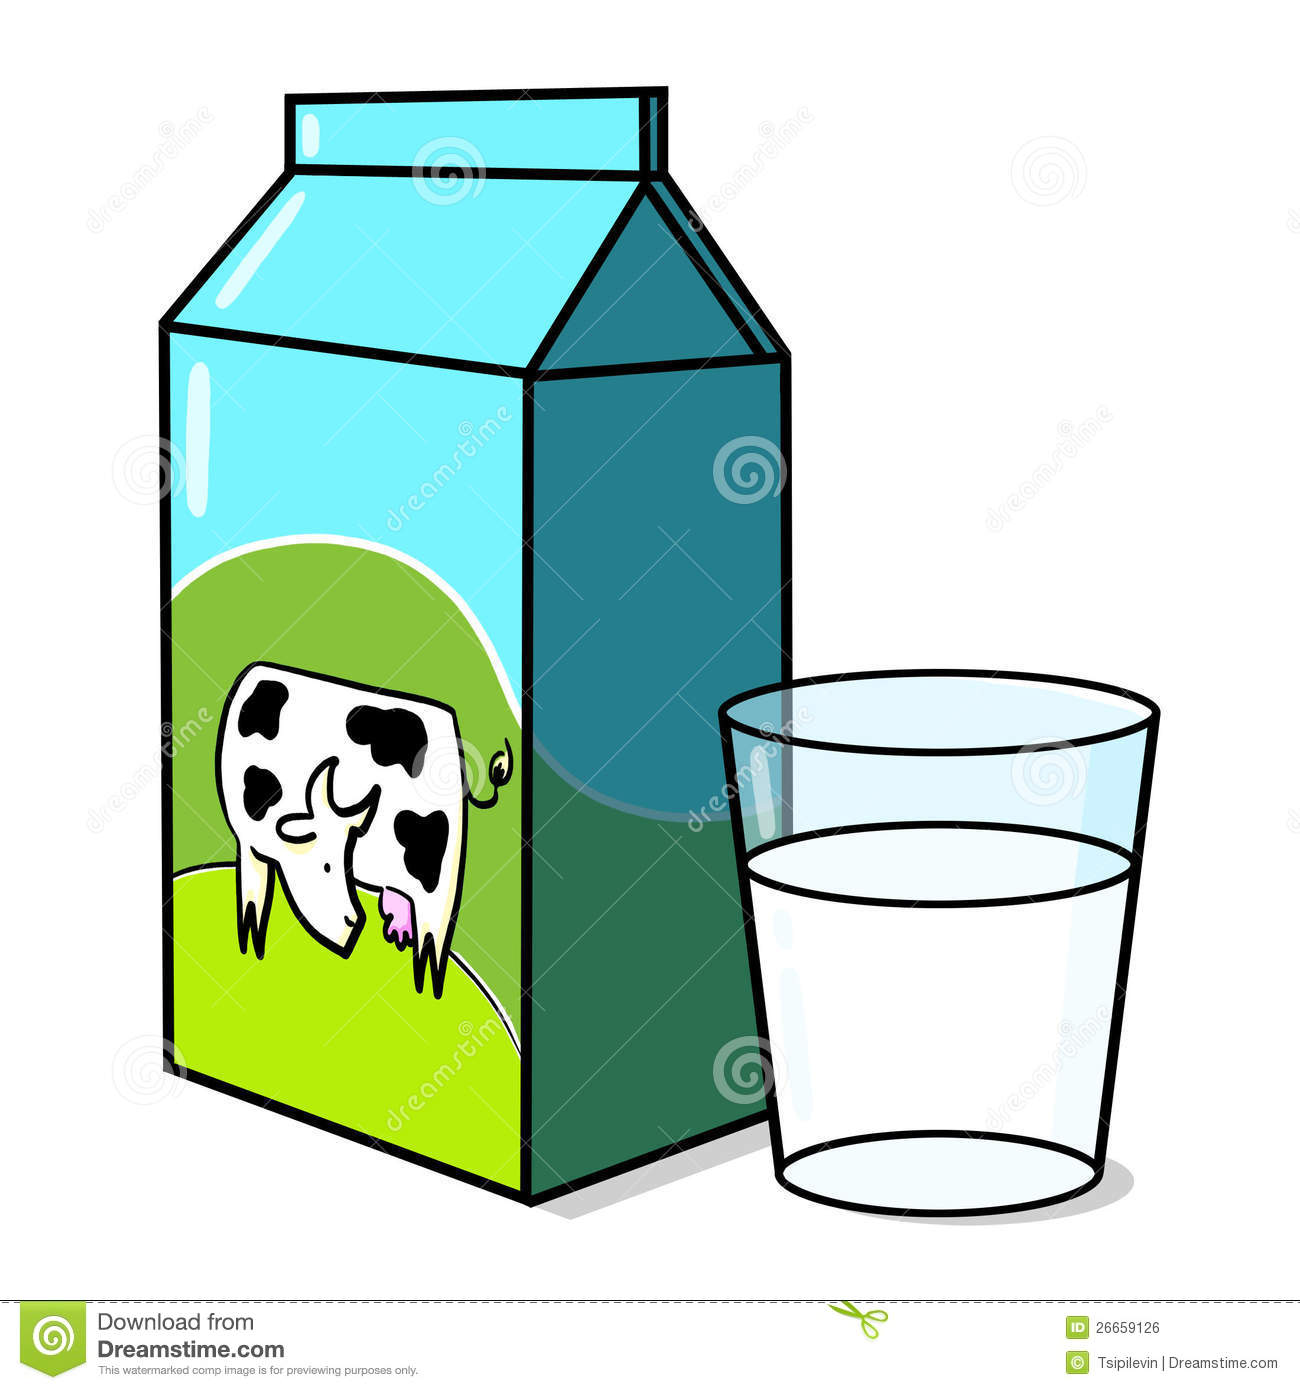 Milk Jar Clipart - Clipart Kid-Milk Jar Clipart - Clipart Kid-15